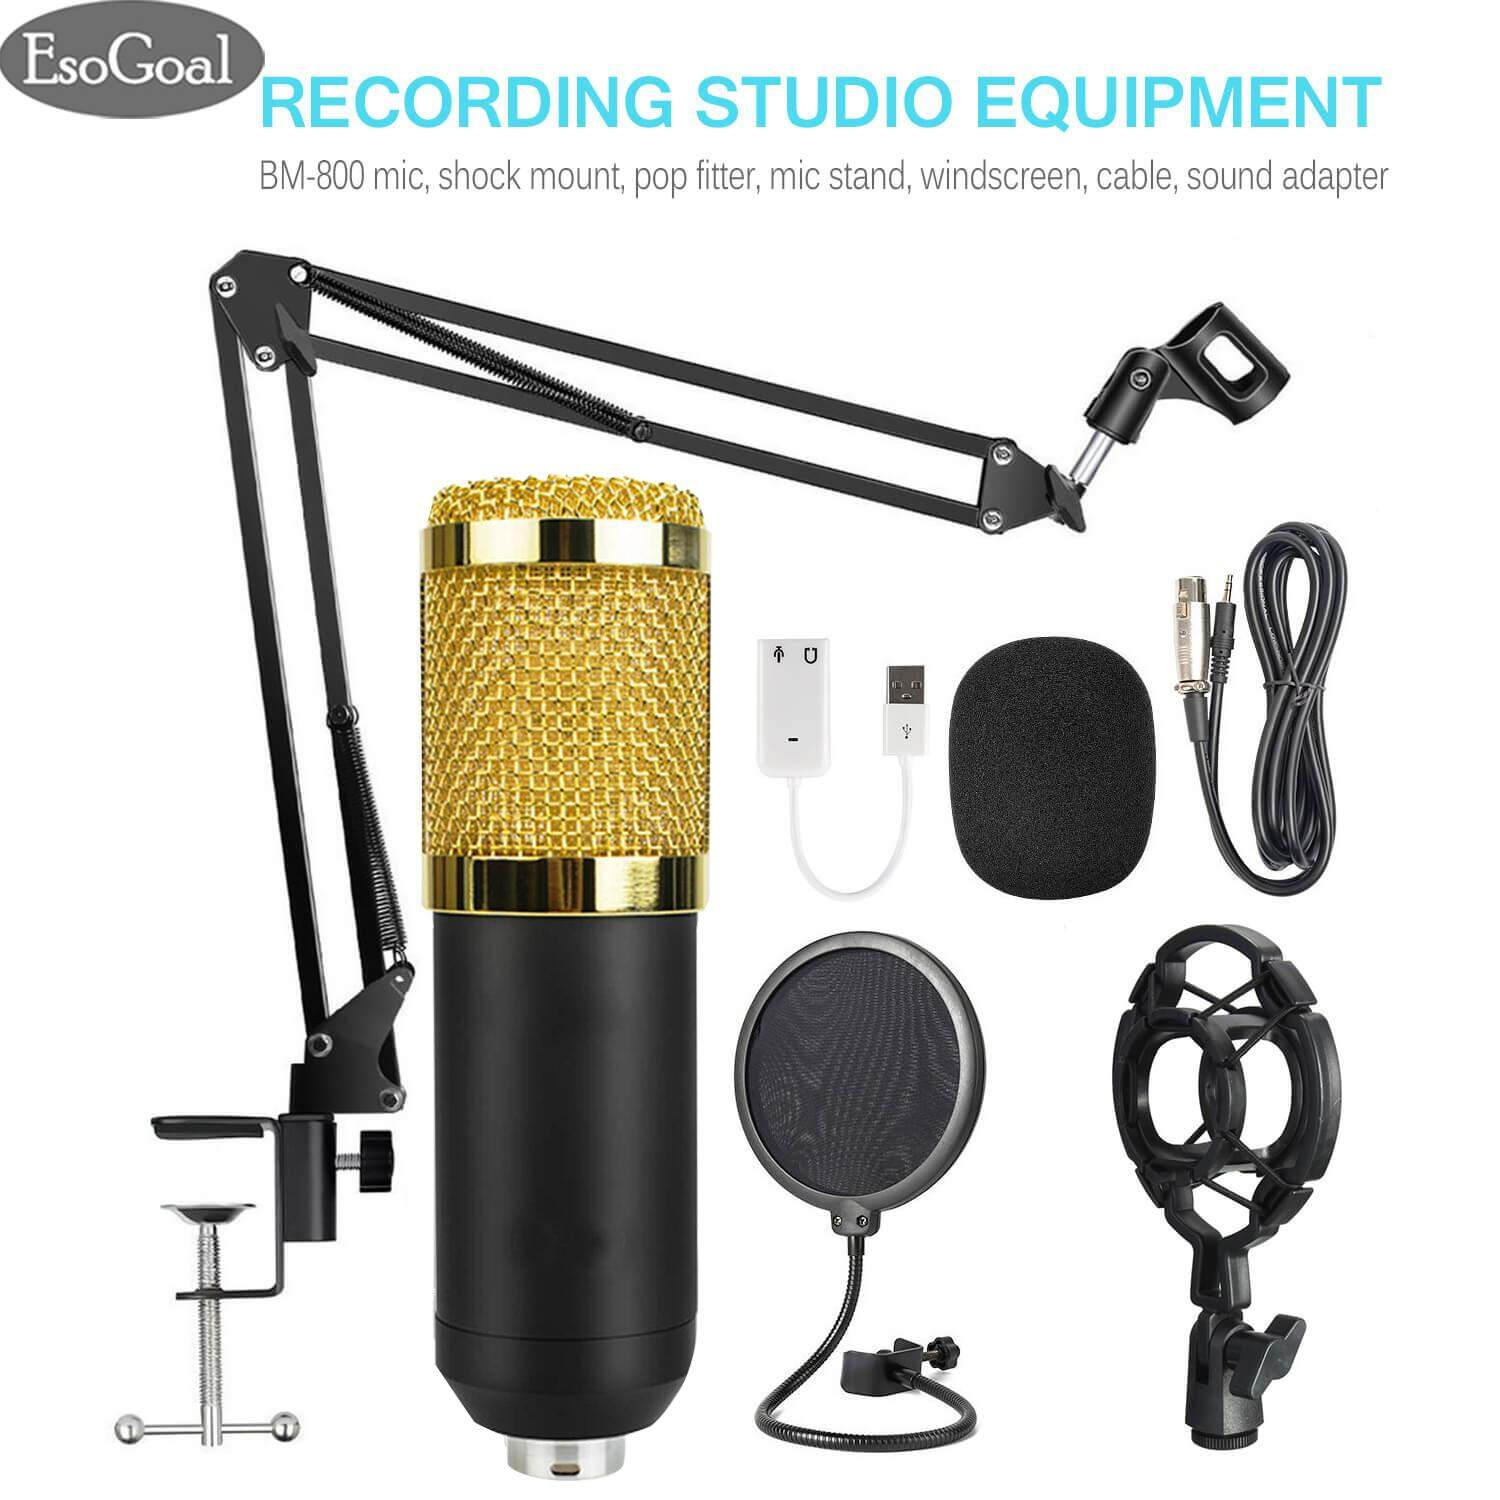 Esogoal Microphone Accessories Professional Recording Studio Equipment, Bm-800 Mic Kit With Adjustable Mic Suspension Scissor Arm, Shock Mount And Double-Layer Pop Filter For Studio Recording & Brocasting By Esogoal.